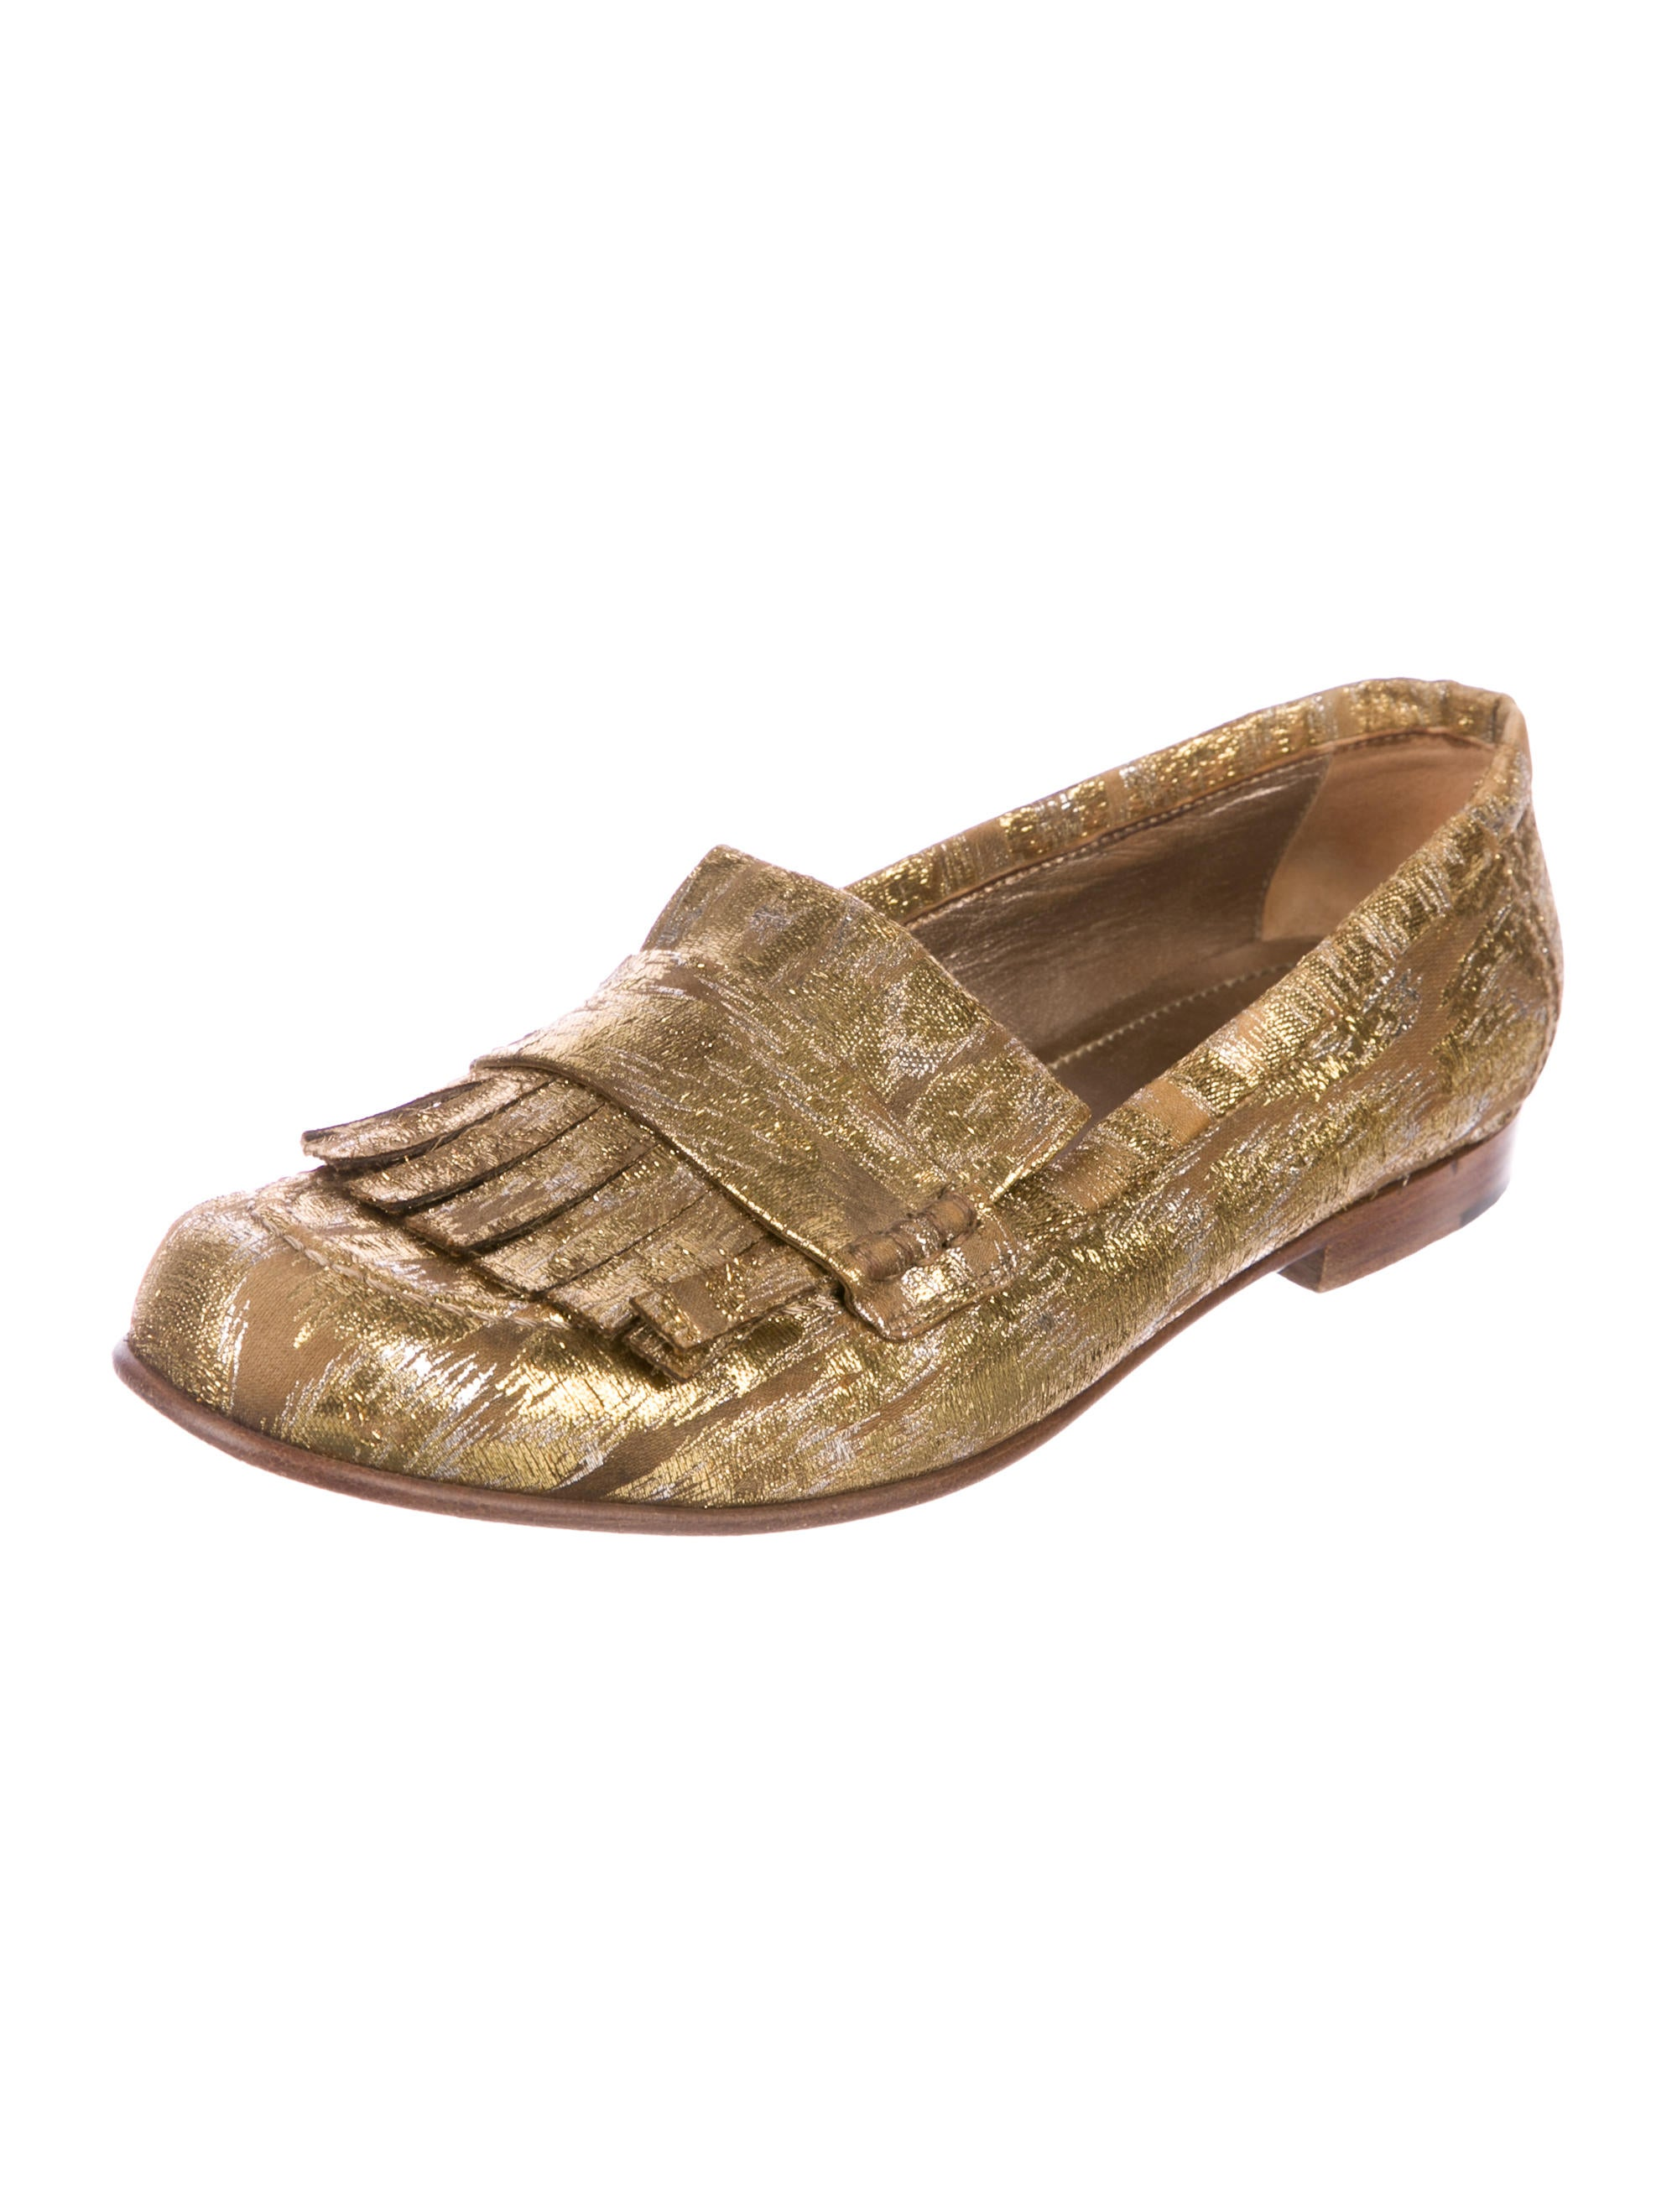 outlet sale online best place to buy Lanvin Kiltie Metallic Loafers cheap low price fee shipping lslsvvfE